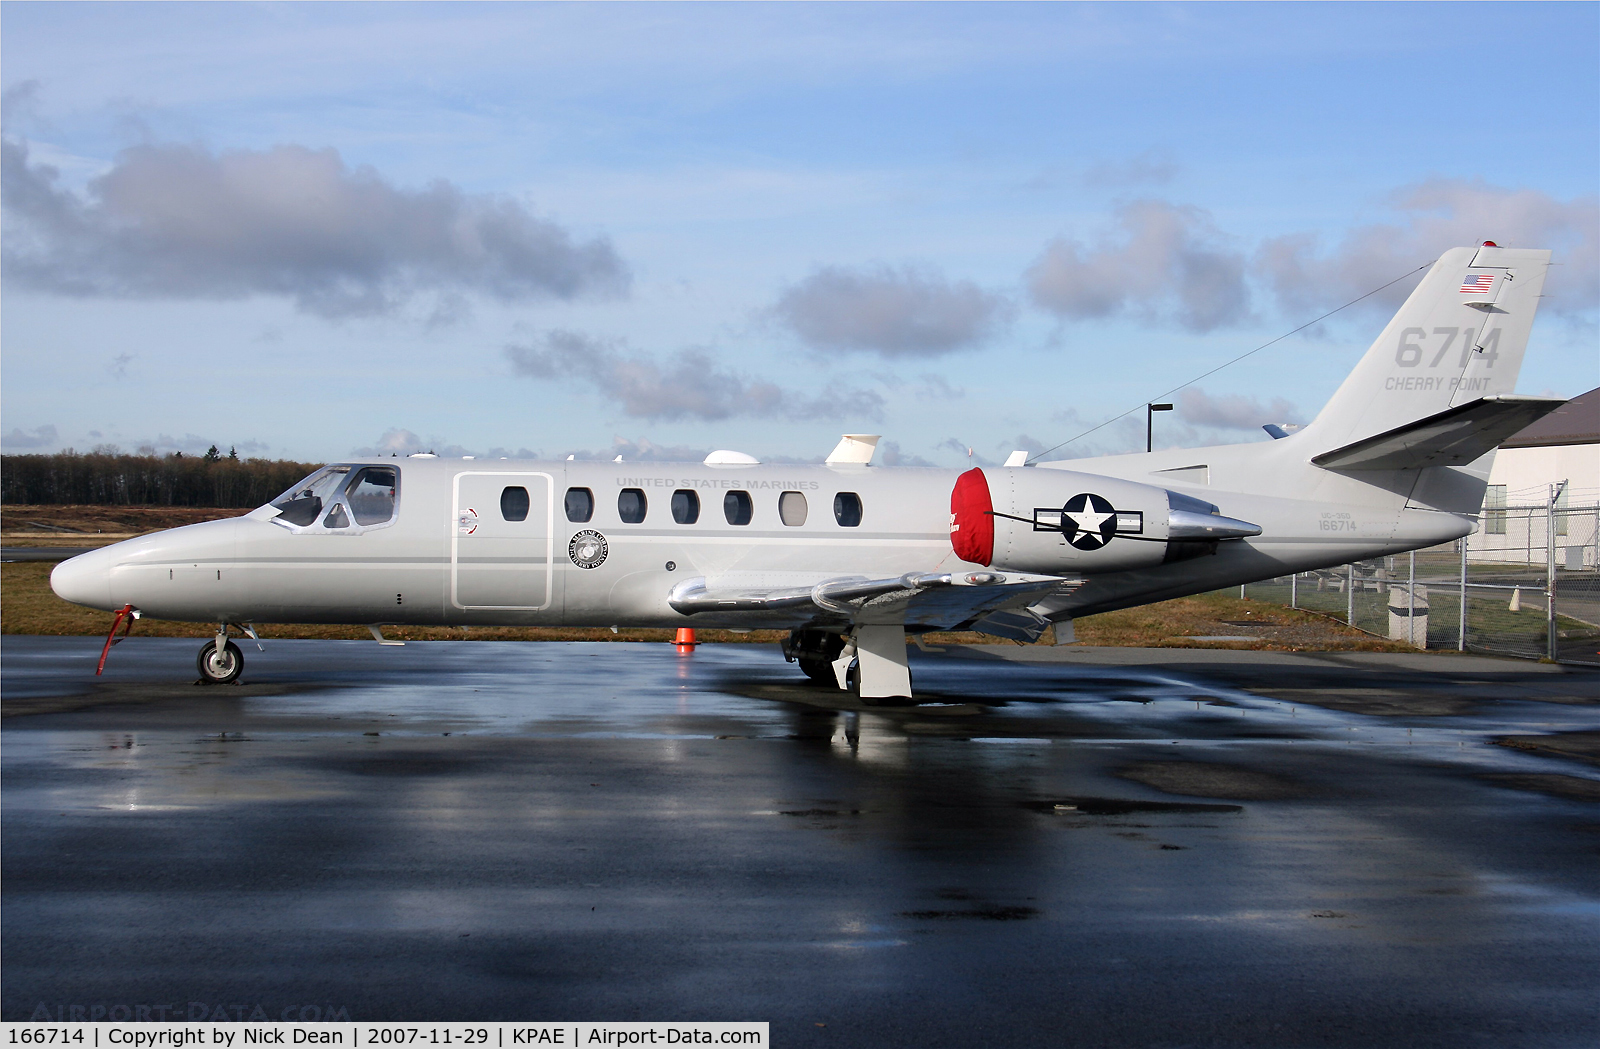 166714, 2005 Cessna UC-35D Citation Encore C/N 560-0679, KPAE